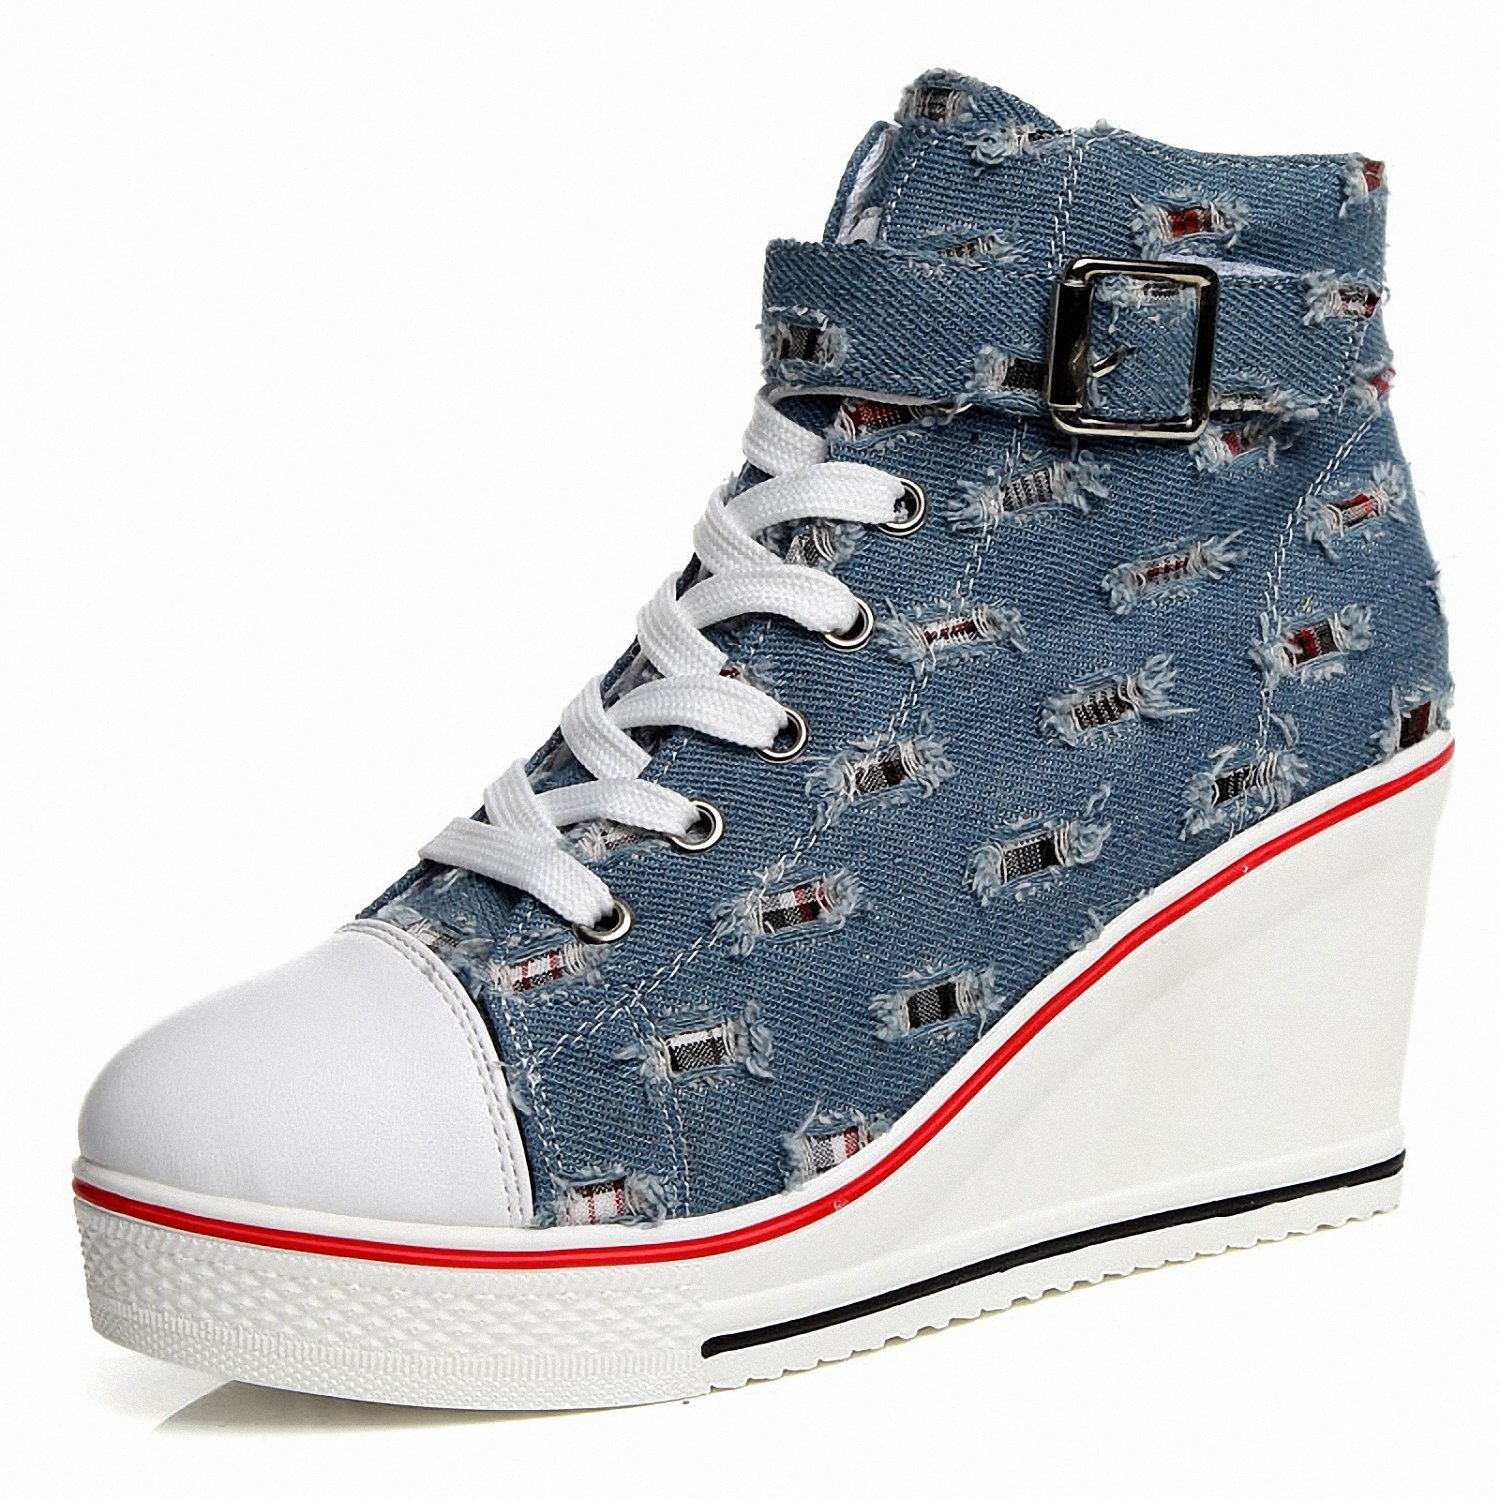 Amazon.com | Smakke Women Wedges Causal Shoes Woman Breathable Platform Denim Canvas Shoes Hidden Wedge Sneakers Zapatillas Mujer | Fashion Sneakers